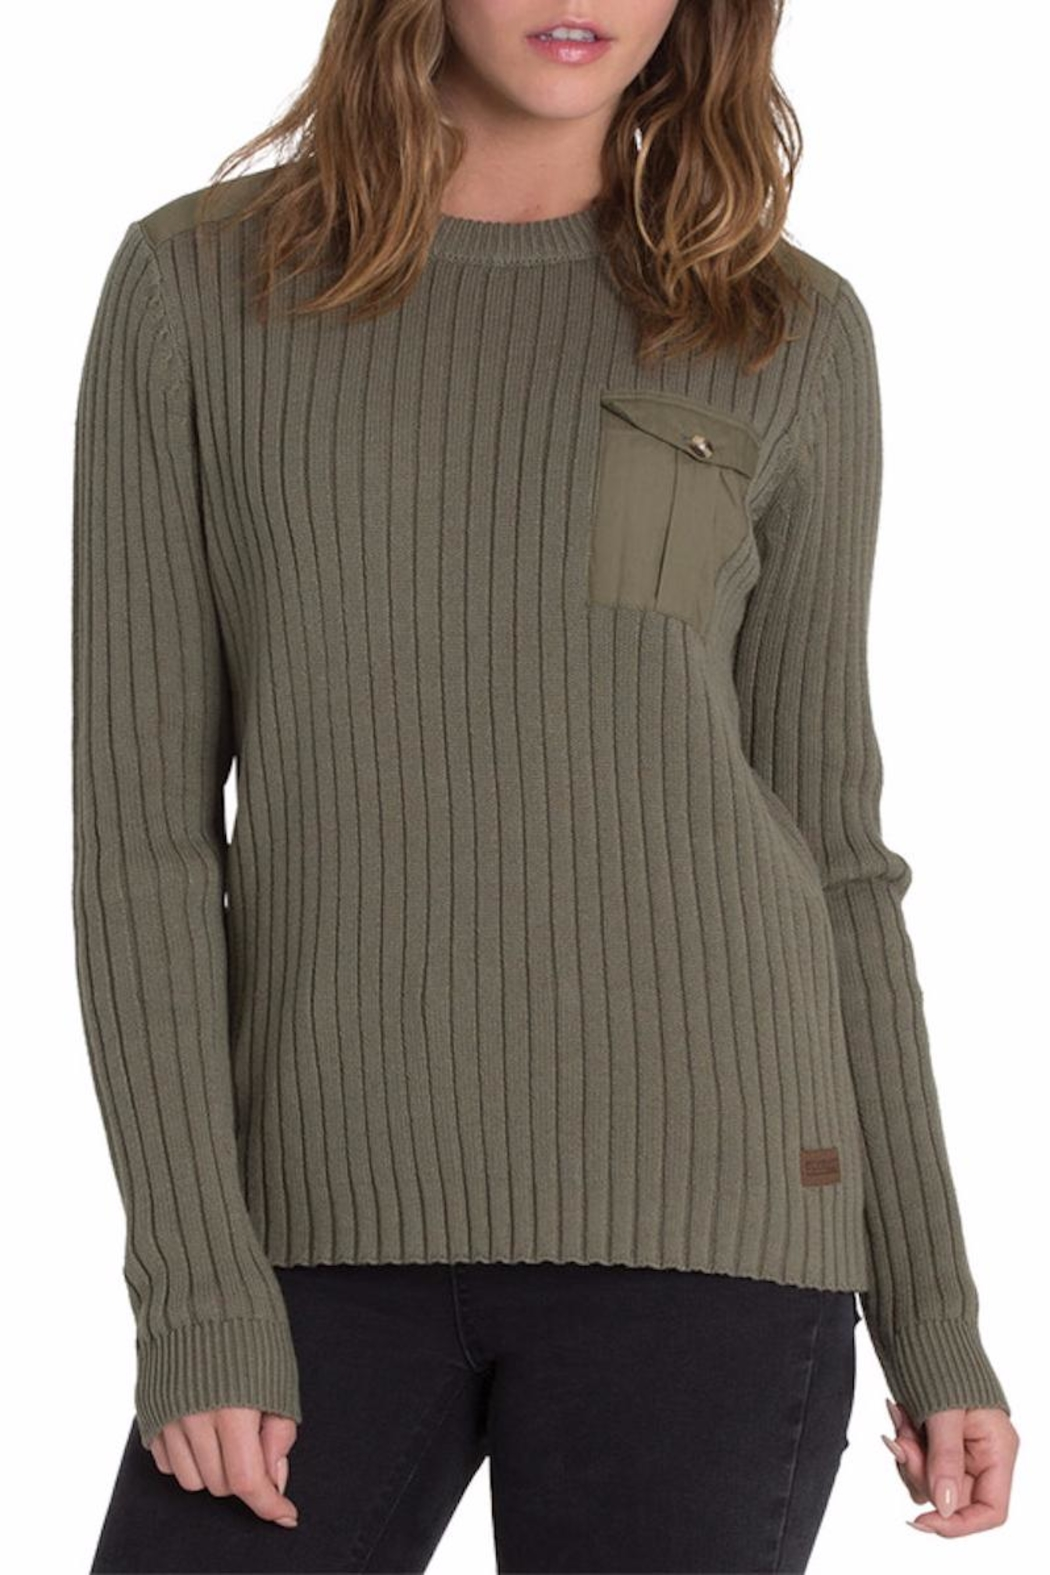 Element Eden Colt Boyfriend Sweater from Mississippi by Wilai ...